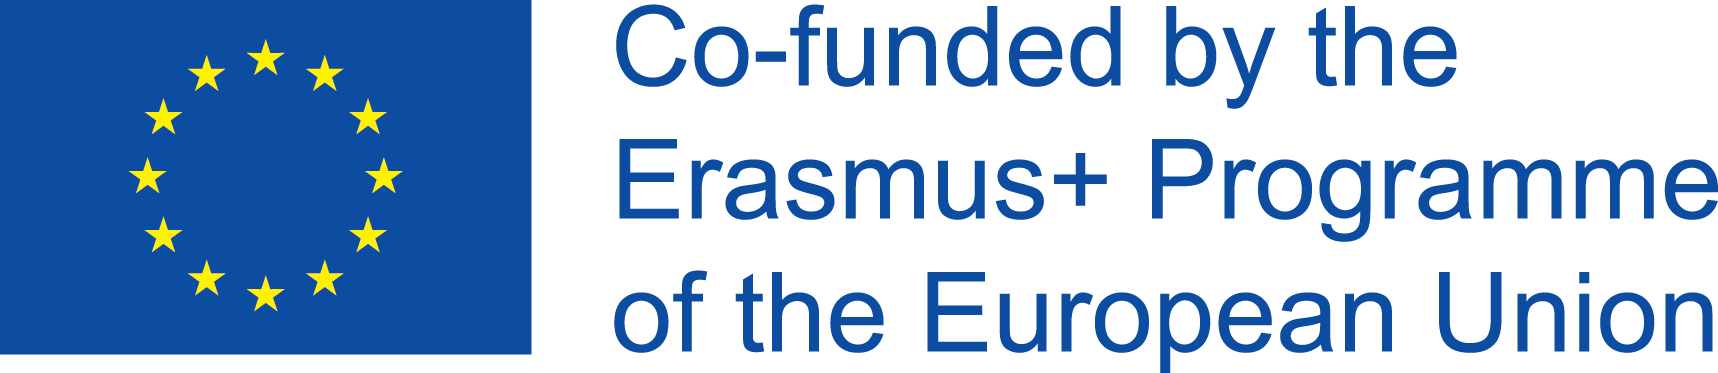 Co-funded by the Erasmus+ Programe of the European Union